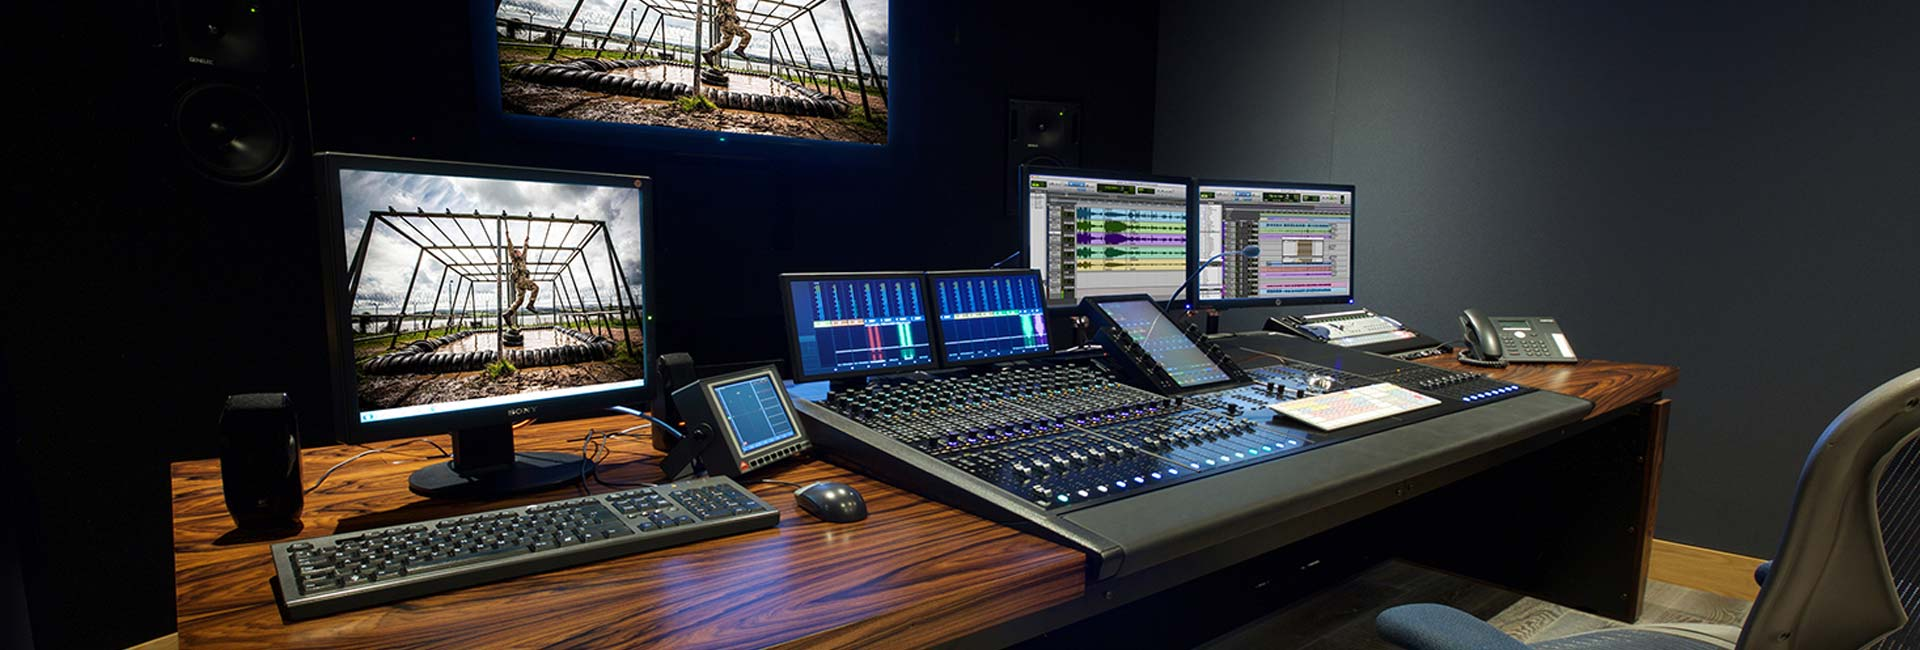 Evolutions custom Avid S6 desk